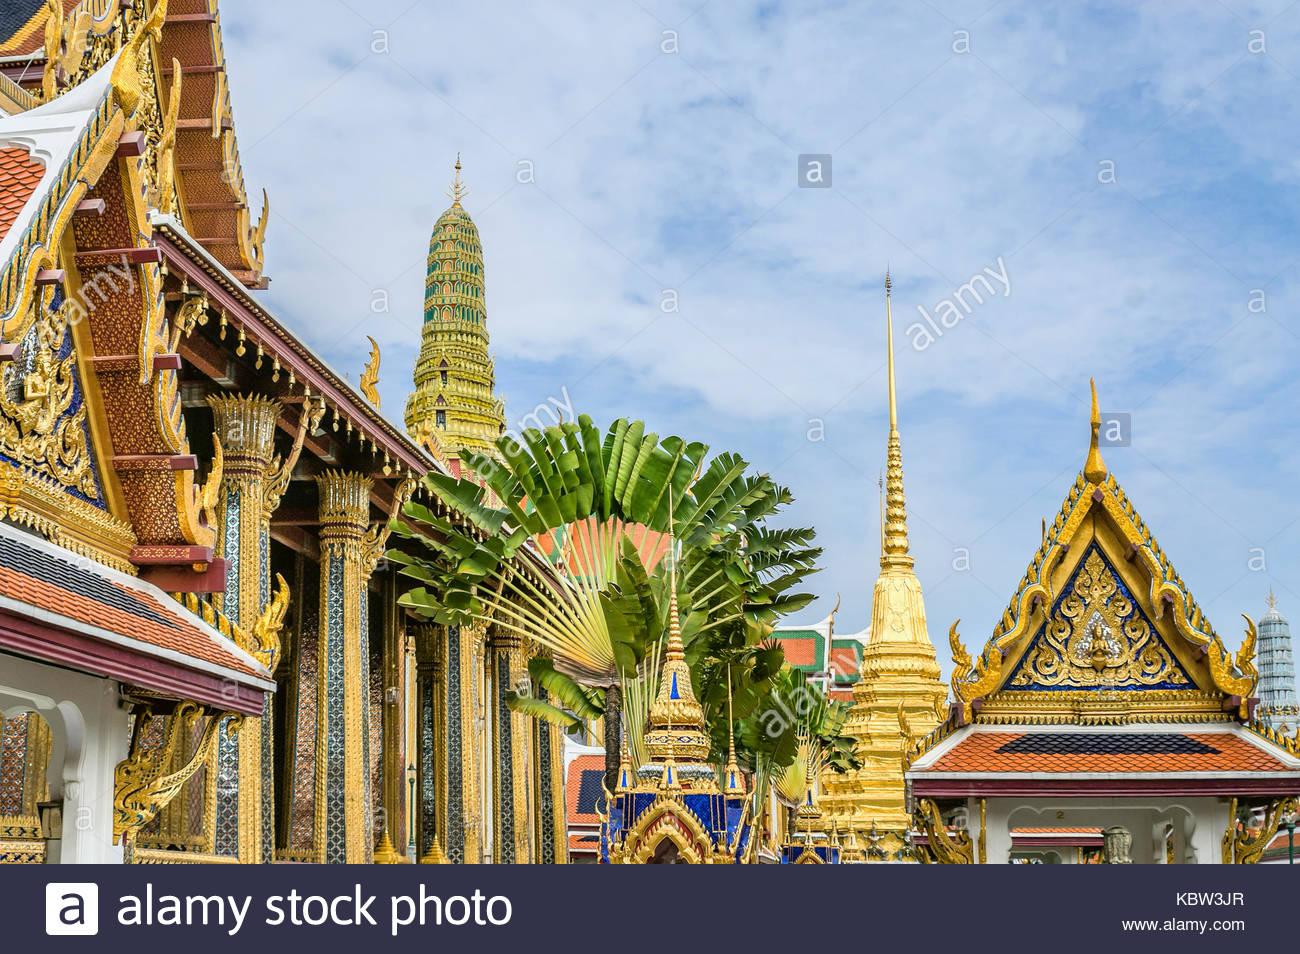 Wat Phra Kaeo- Temple of the Smaragd Buddha, the main landmark of Bangkok, Thailand - Stock Image